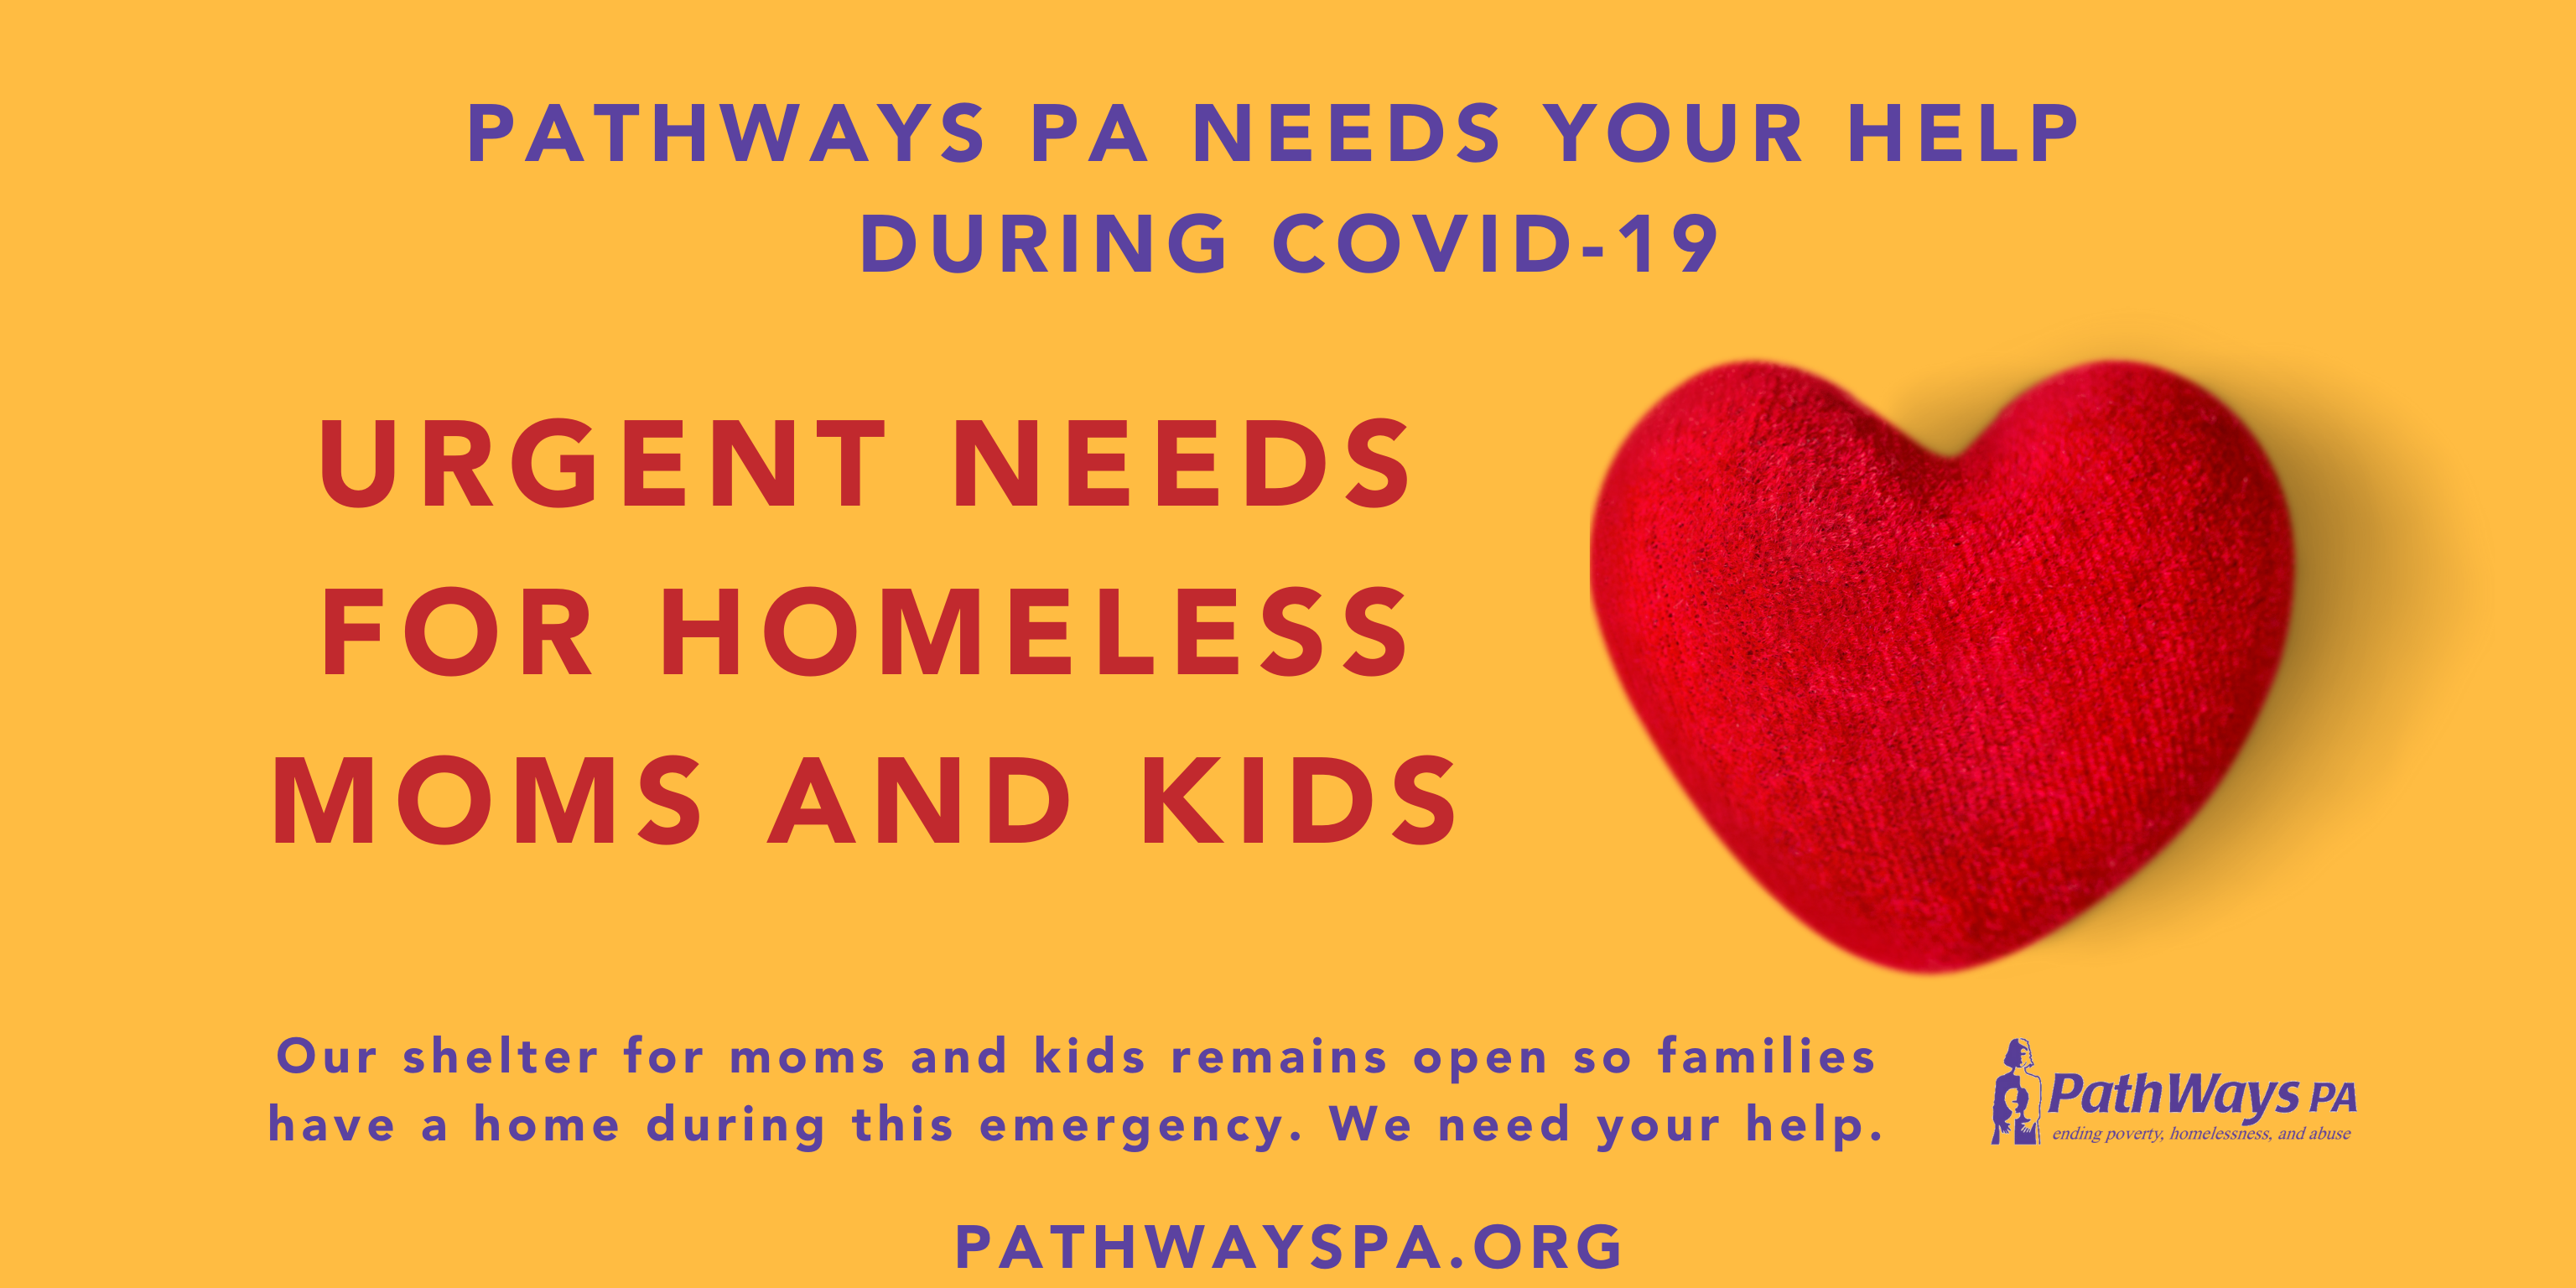 PathWays PA needs your help during COVID-19. Our Center for Families remains open to house homeless moms and children.